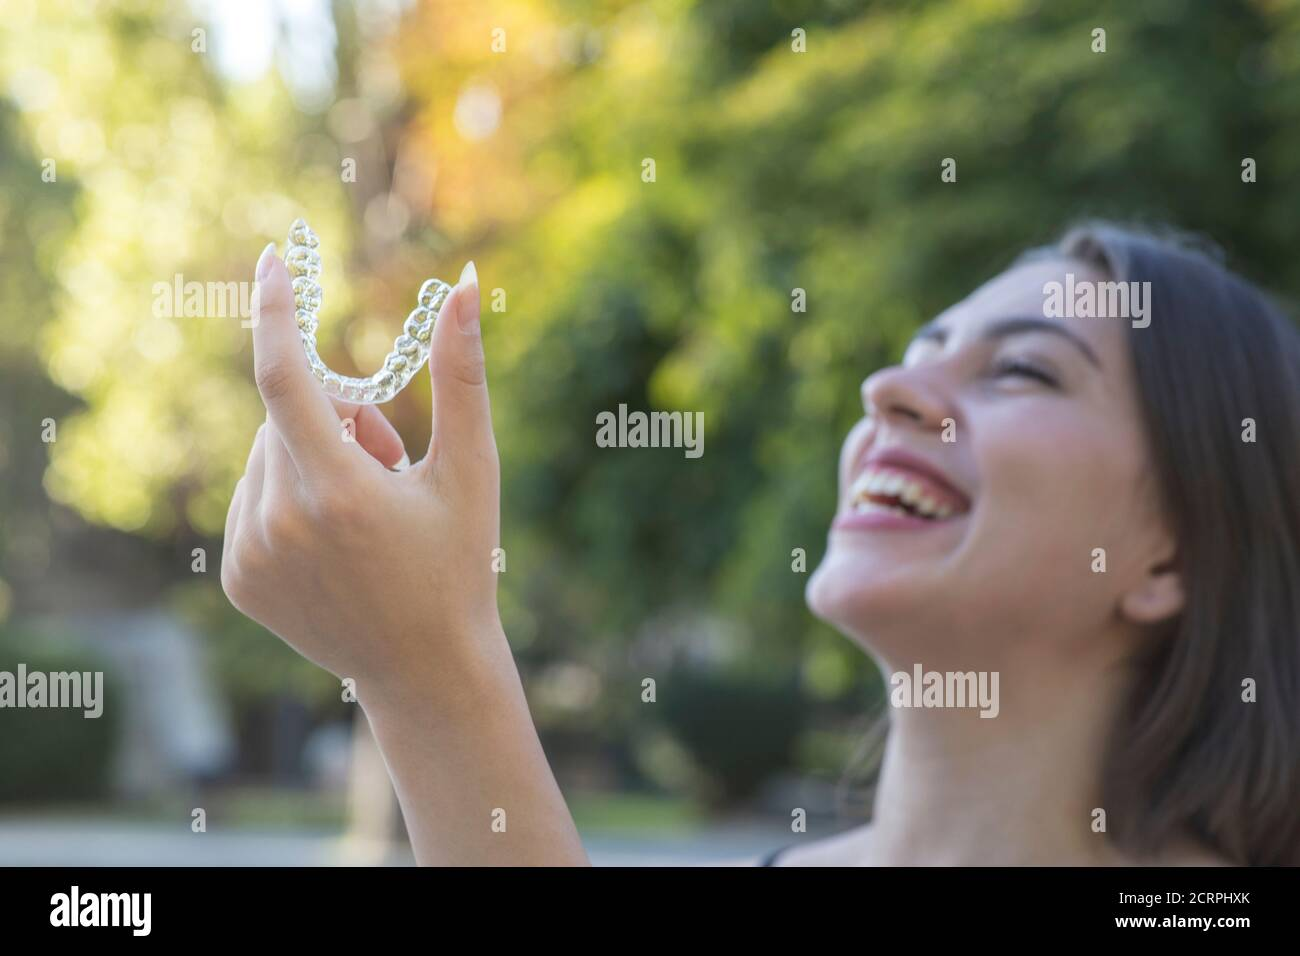 Beautiful smiling Turkish woman is holding an invisalign bracer Stock Photo